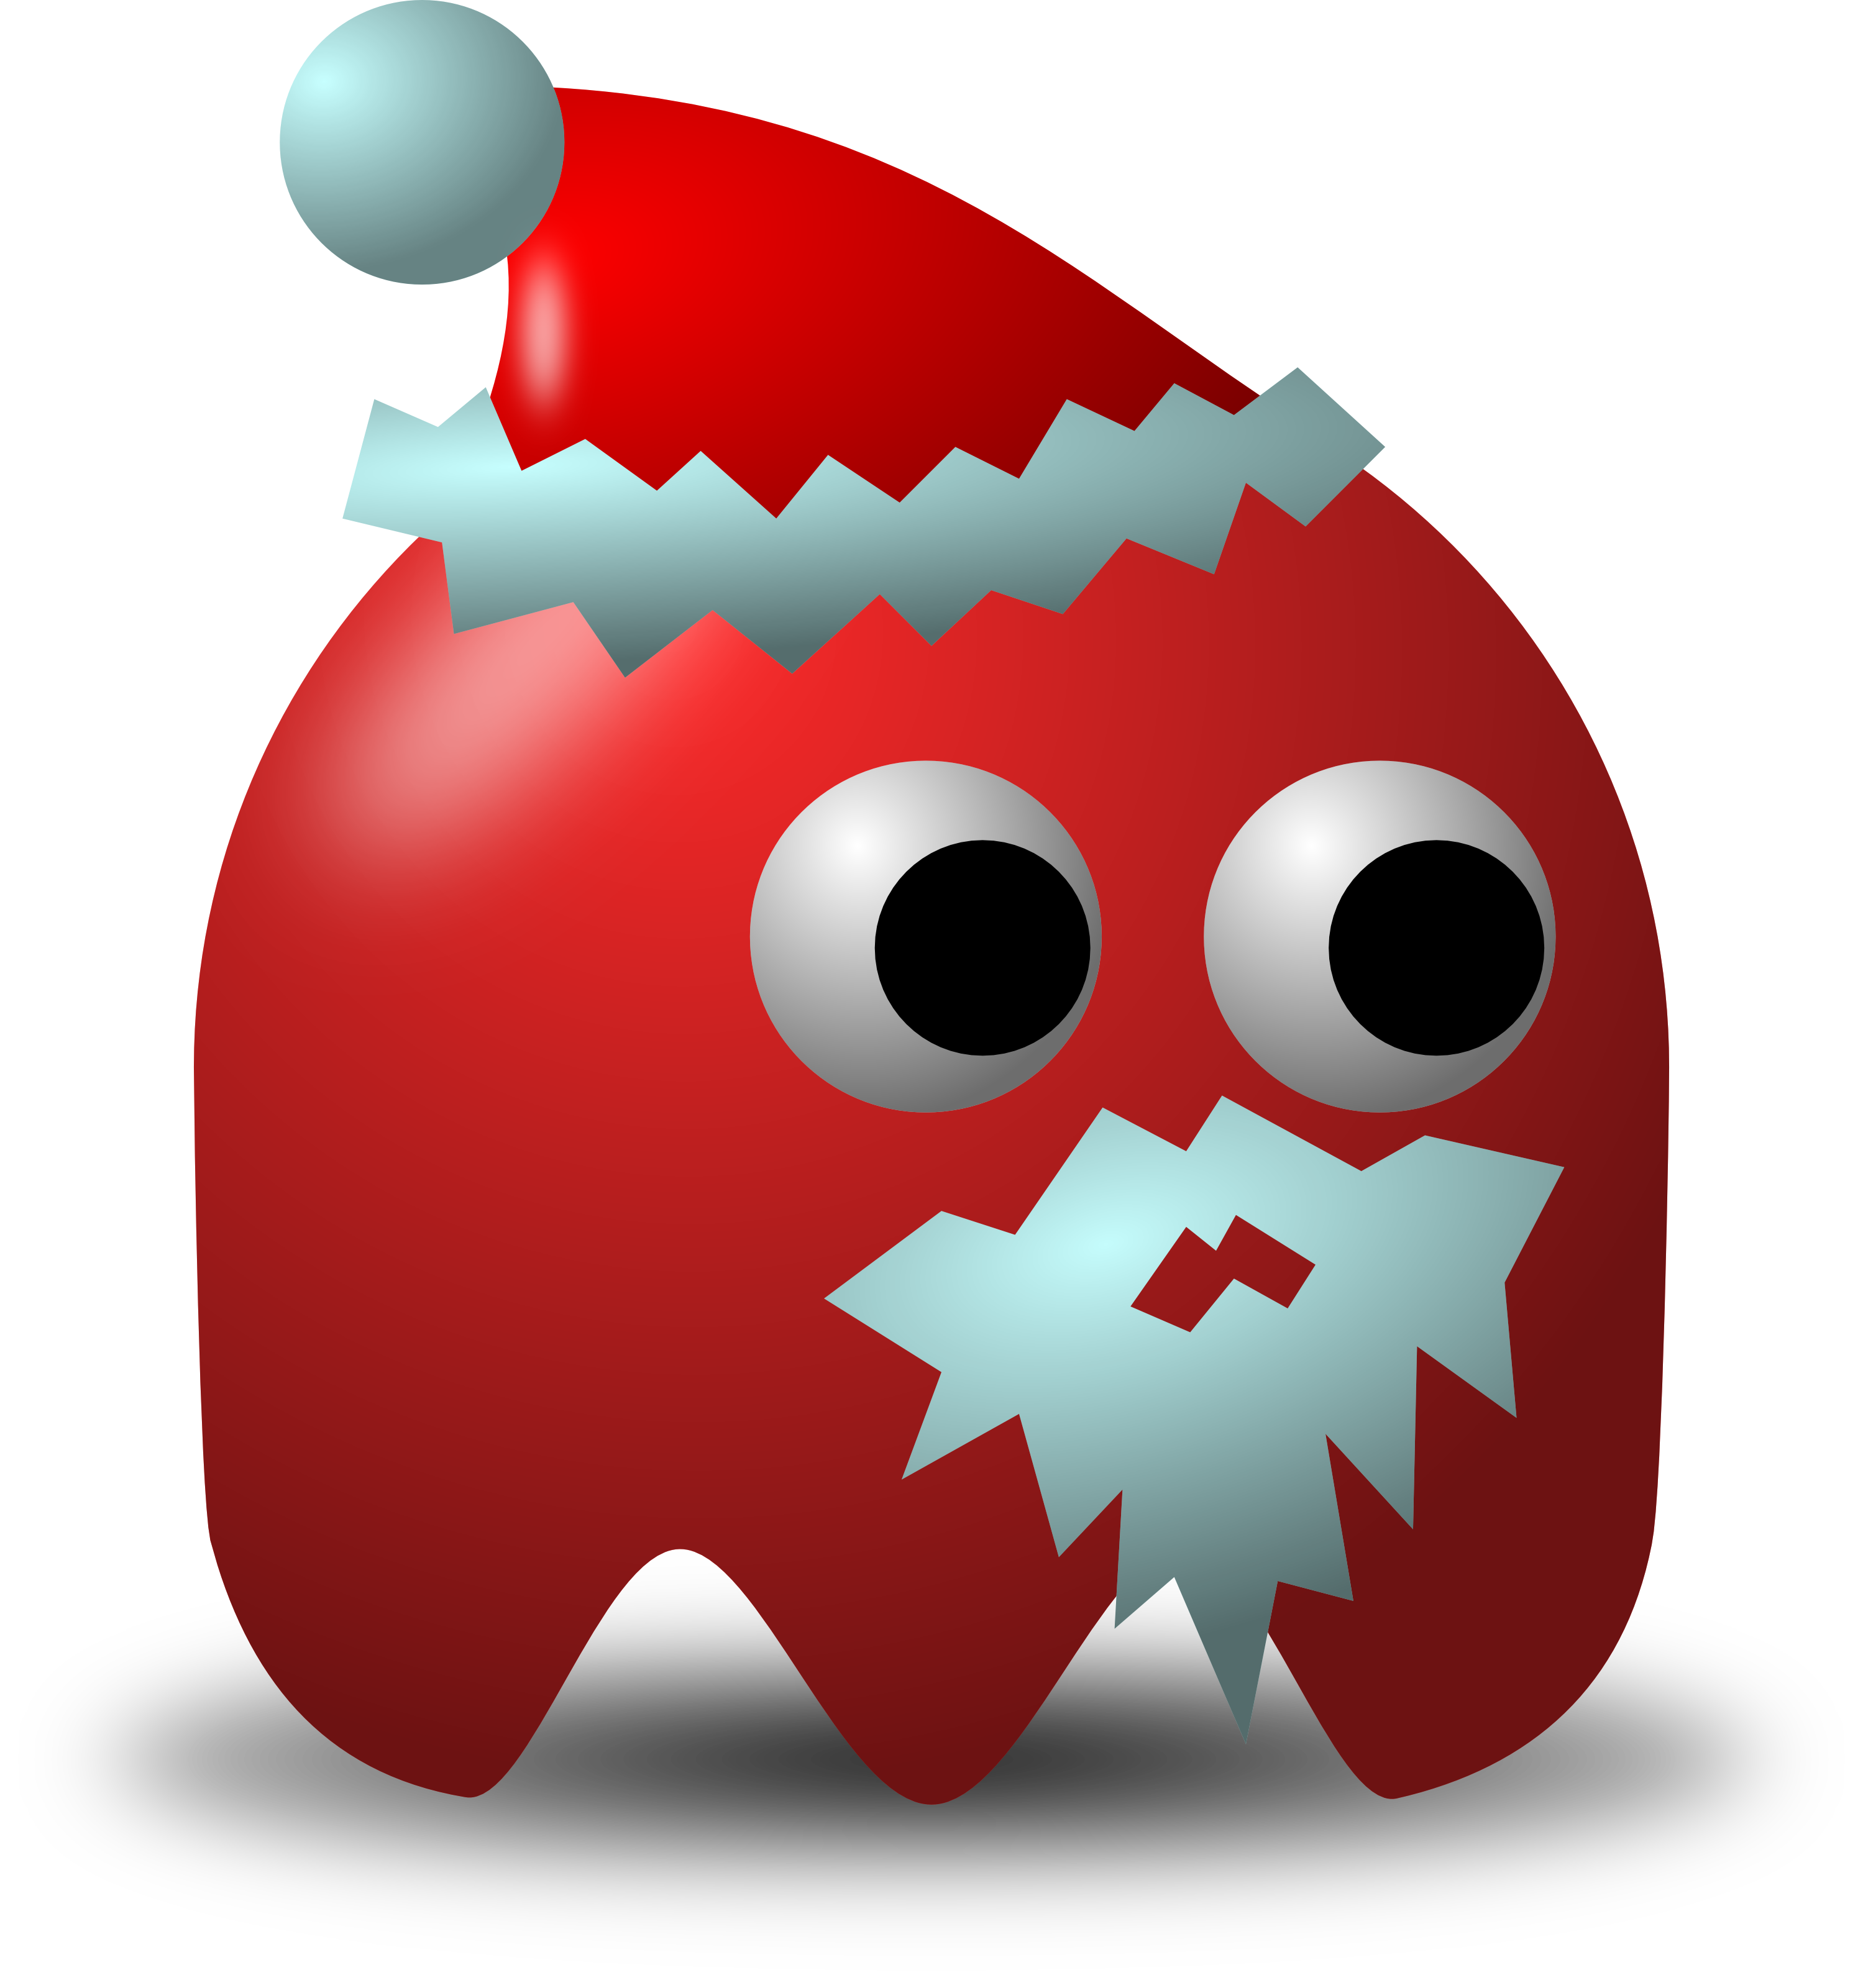 Free Christmas vector graphic of a Santa avatar wearing a hat and gray ...